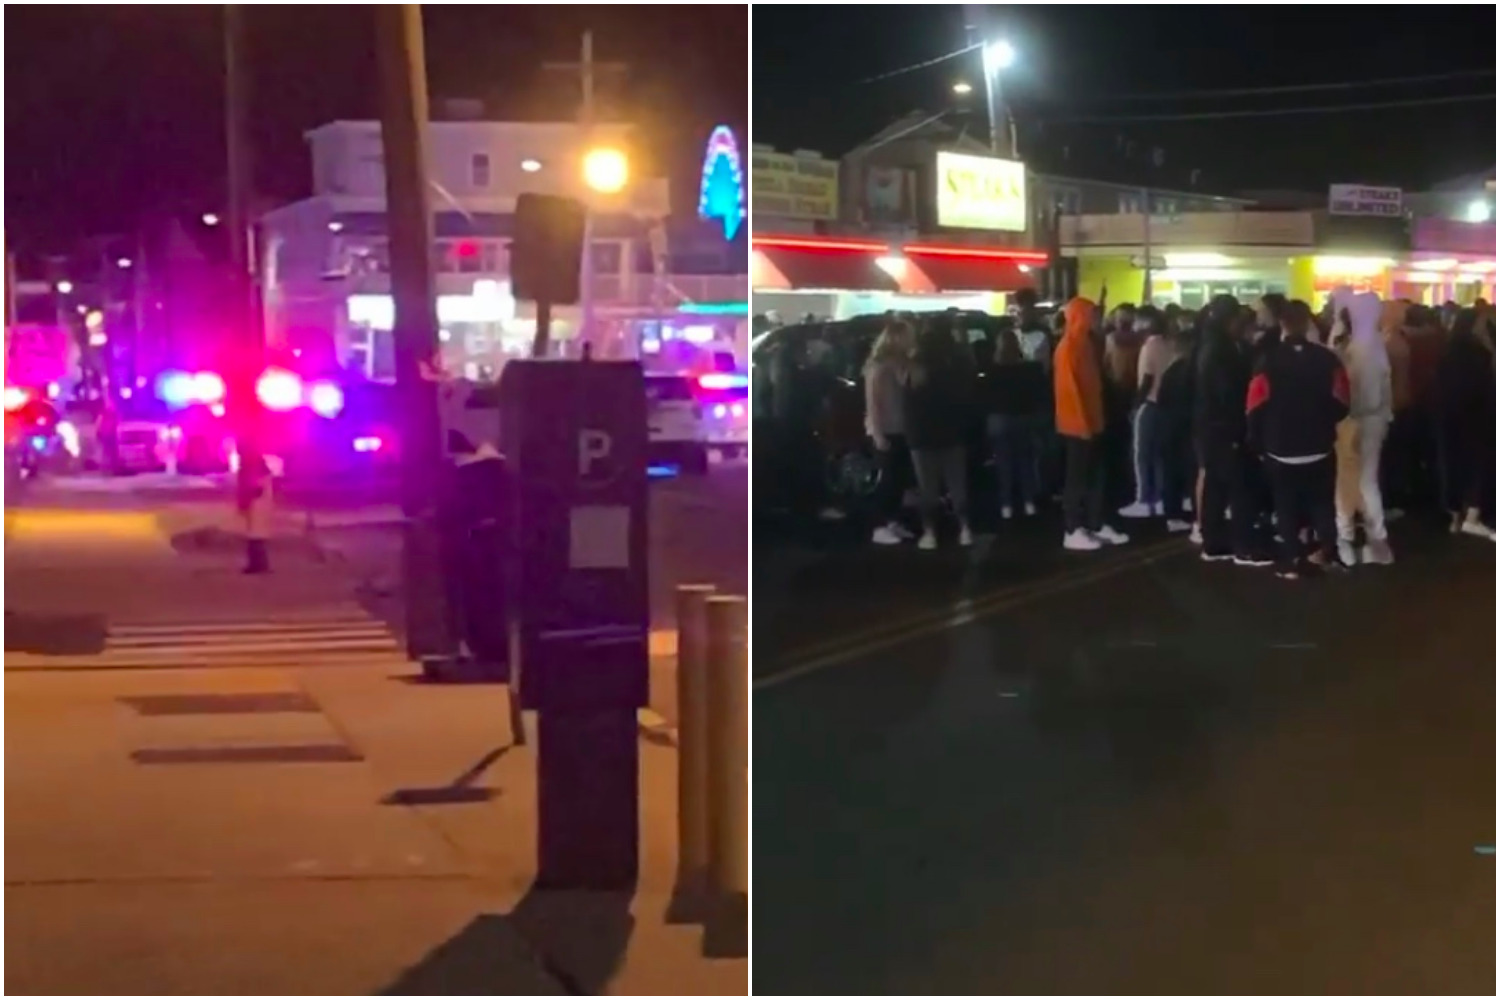 Crowds in Seaside Heights after the Nelk Boys promoted an appearance online, Sept. 15, 2020. (Supplied Photo)